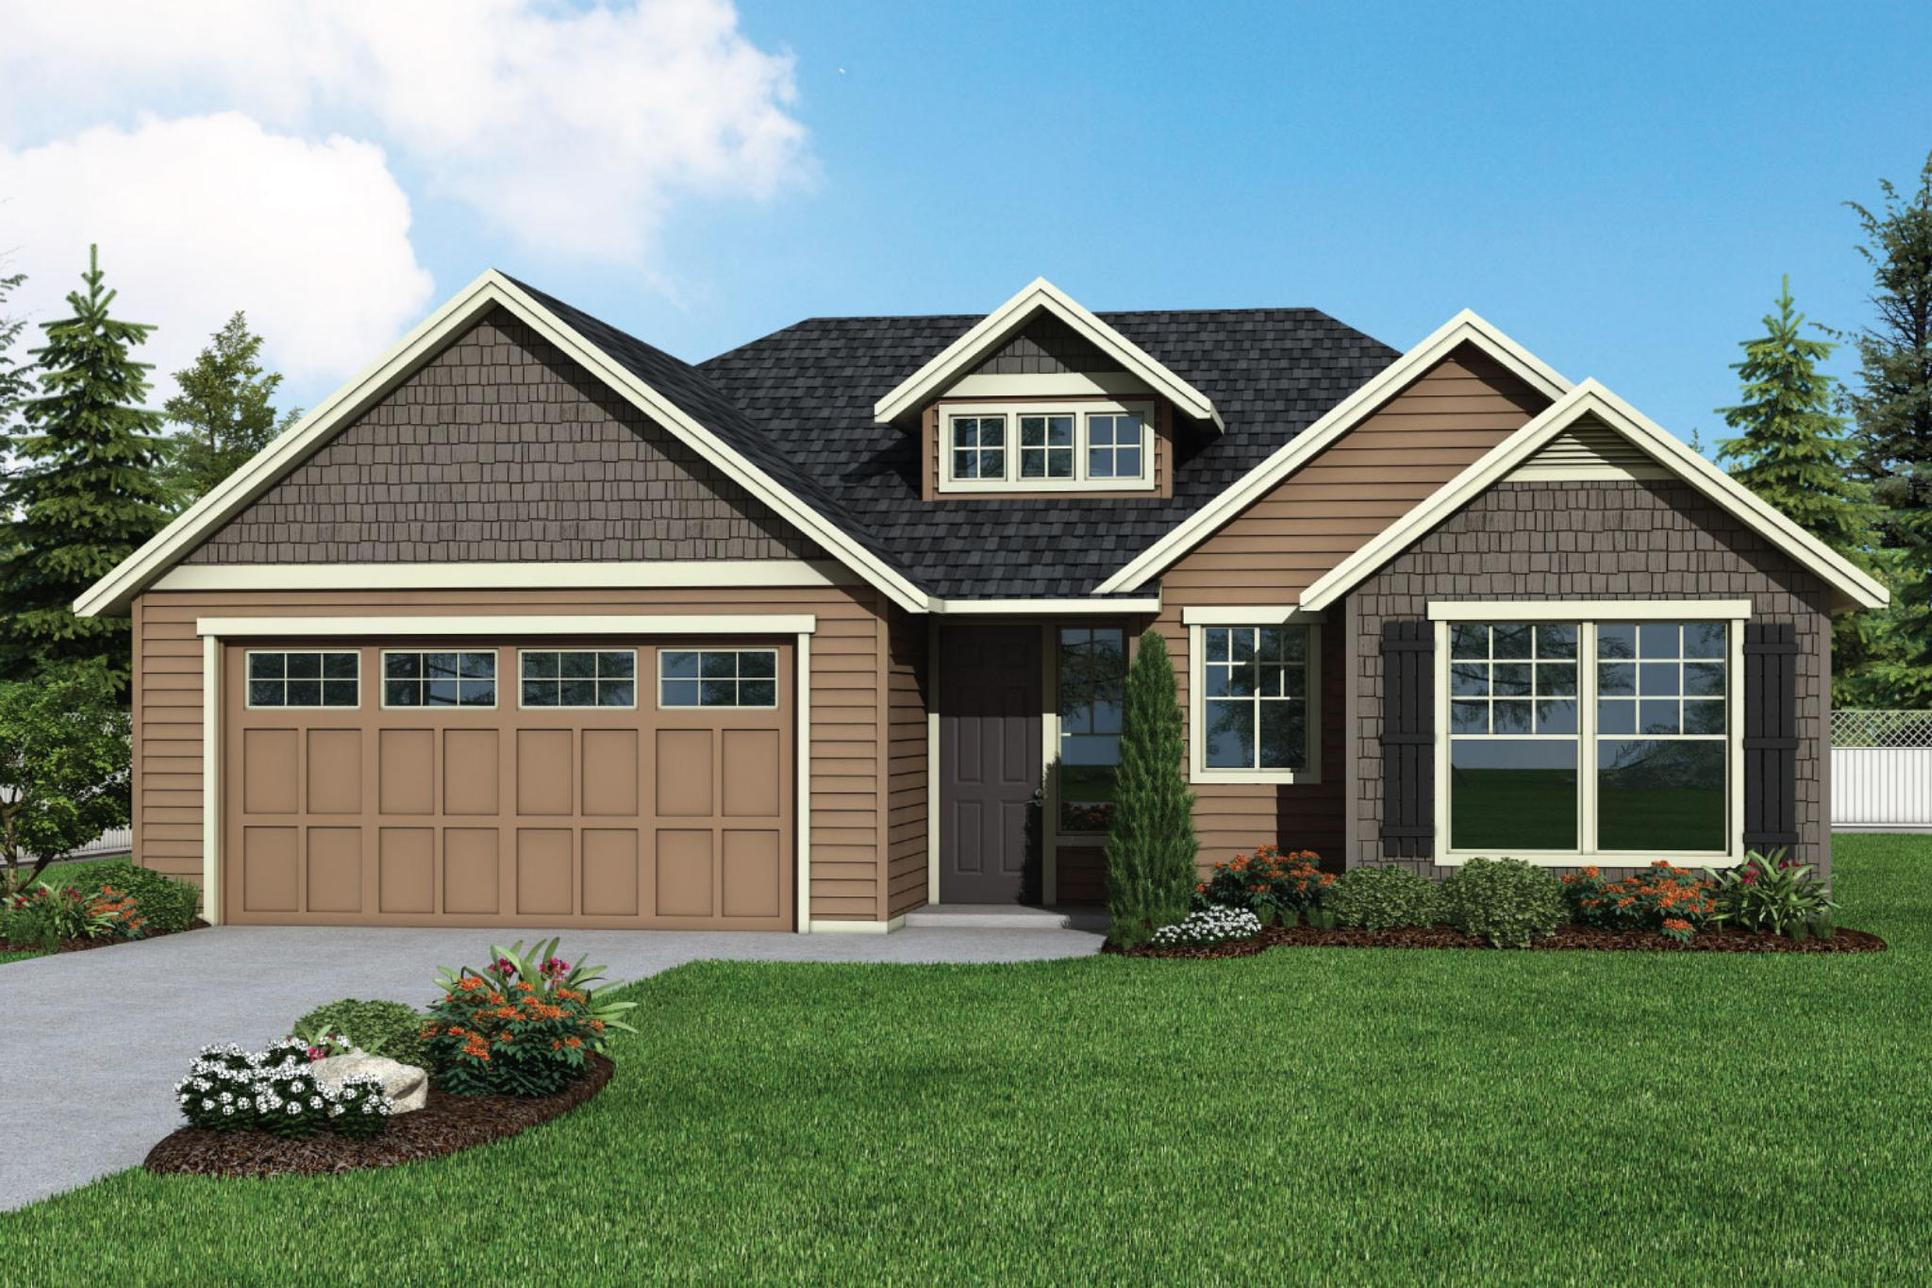 Plan 1852 Elevation 1 Rendering by Aho Construction:Plan 1852 Elevation 1